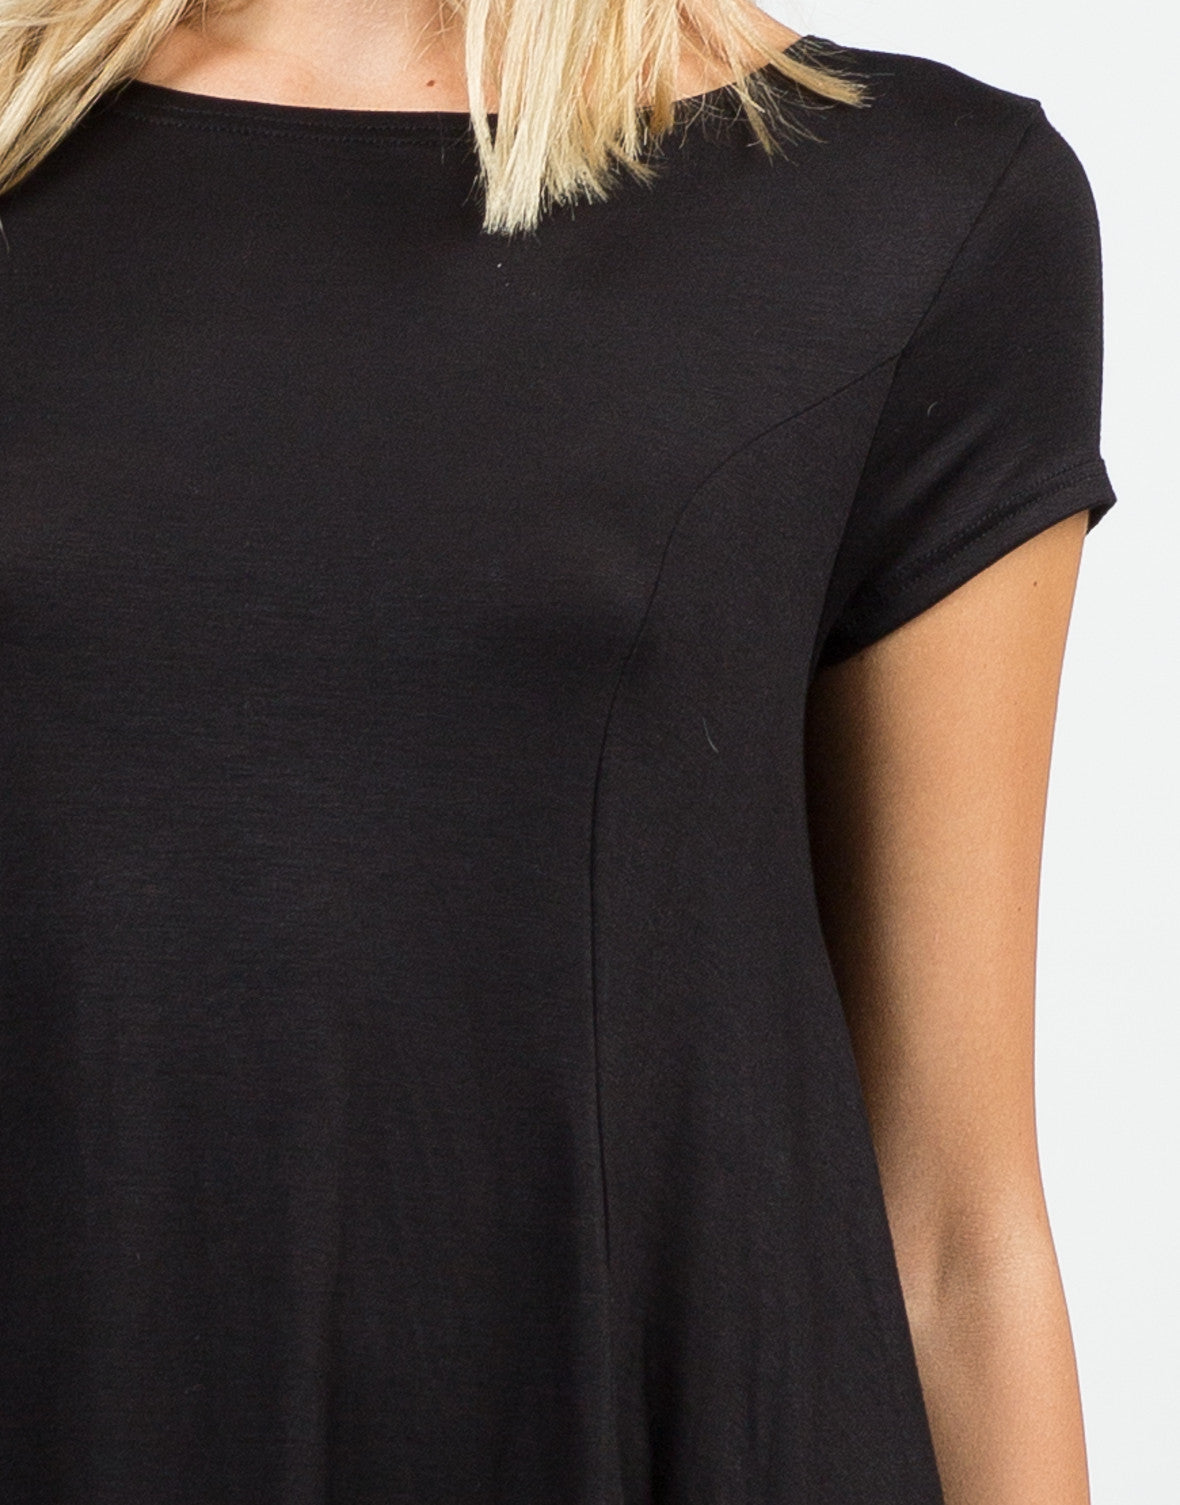 Detail of Basic Tunic Top